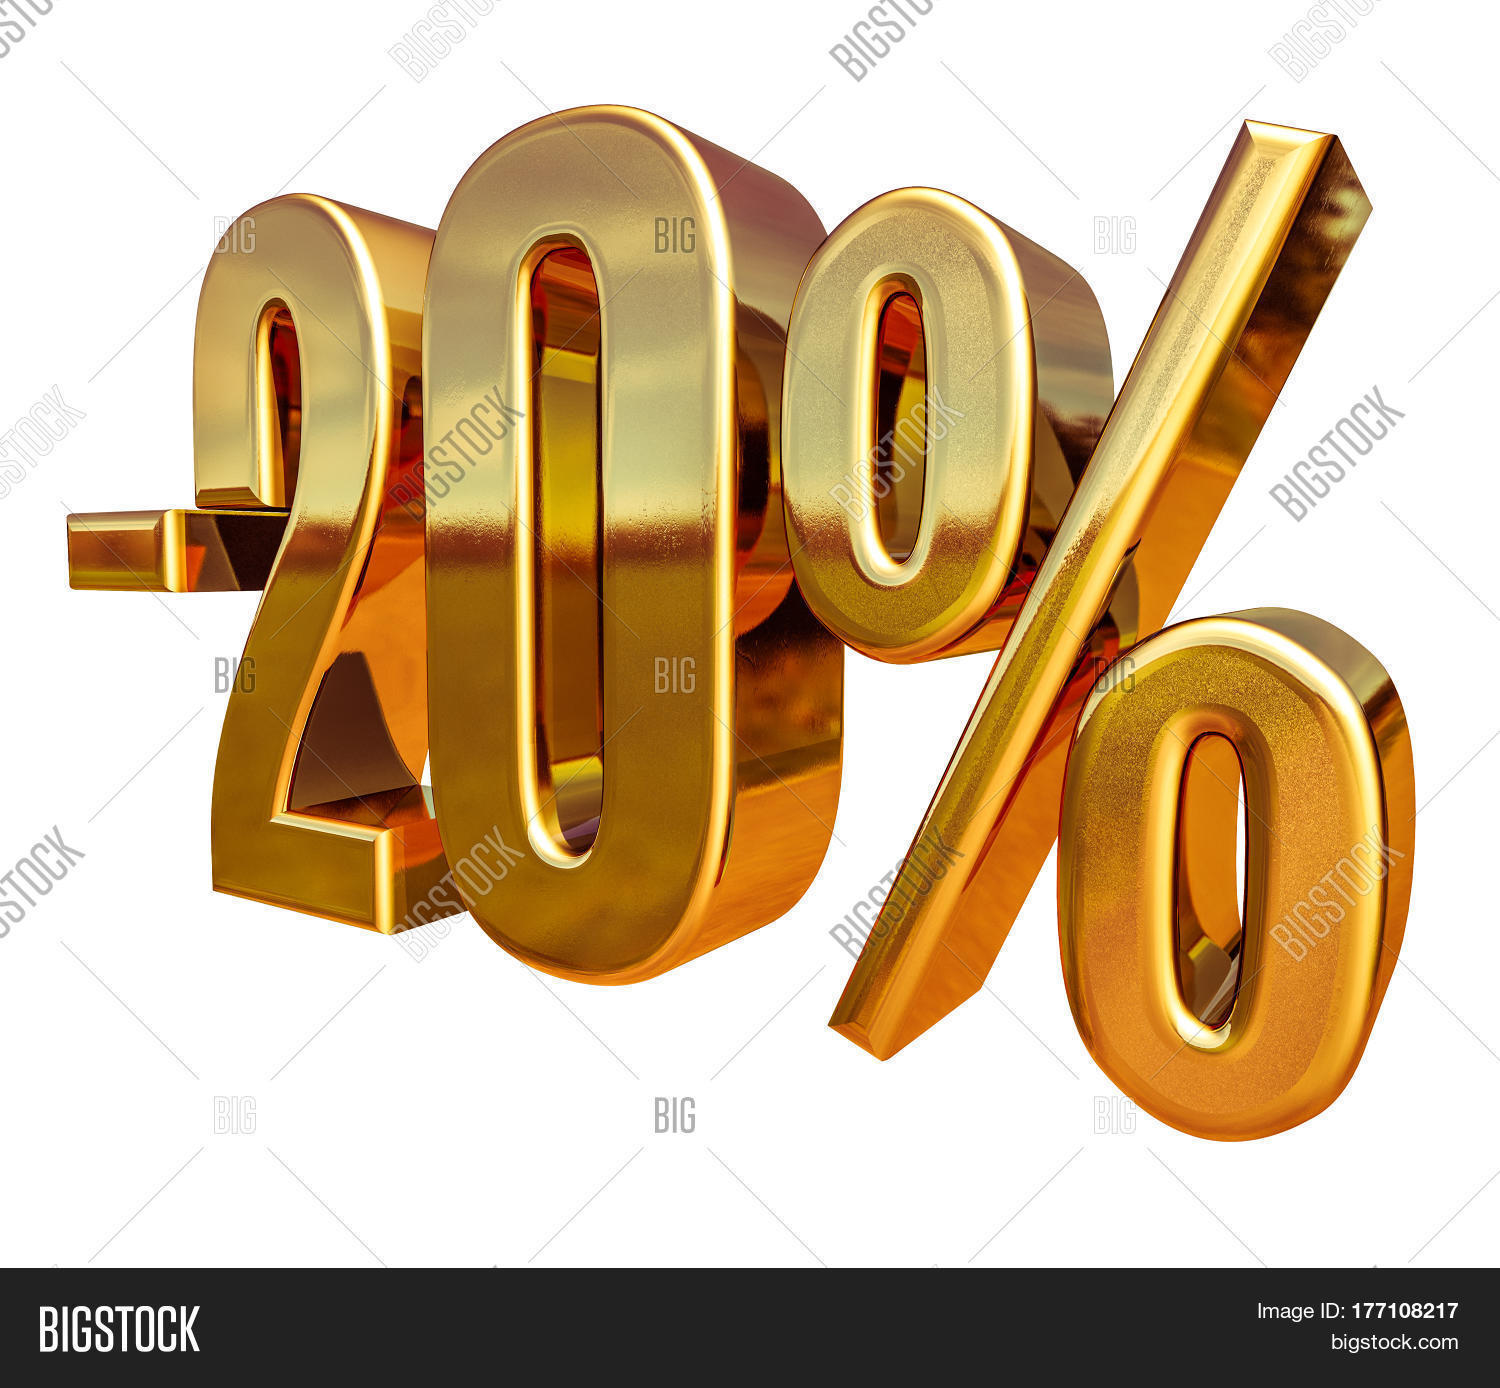 imagem e foto 3d render gold 20 percent off bigstock. Black Bedroom Furniture Sets. Home Design Ideas